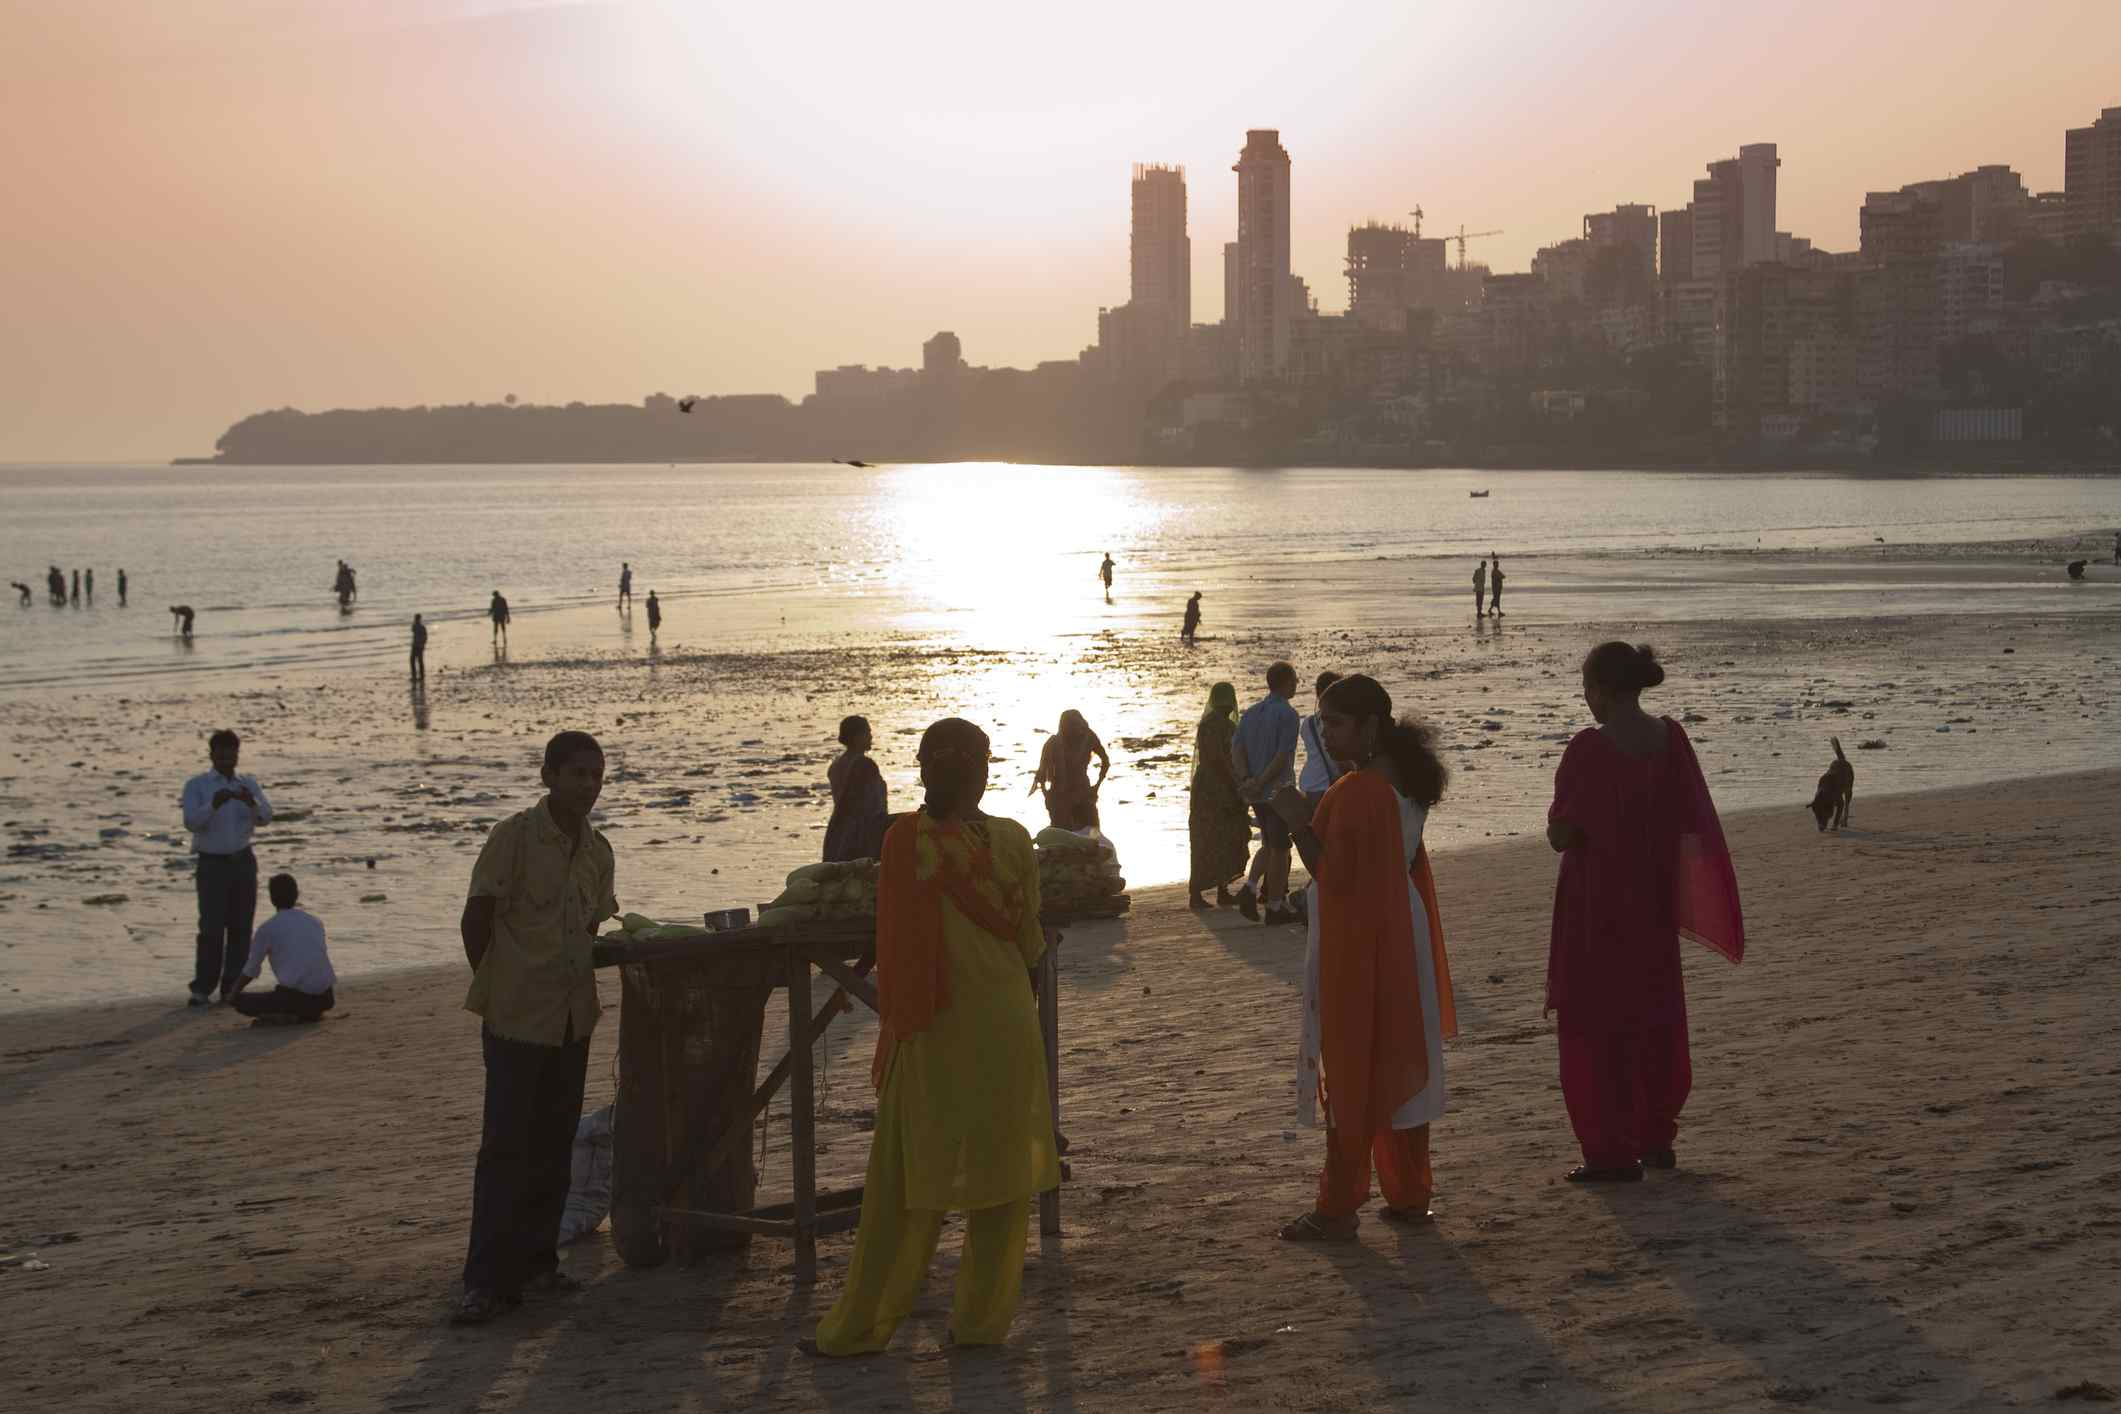 People on Chowpatty beach at sunset with Malabar Hill in background.